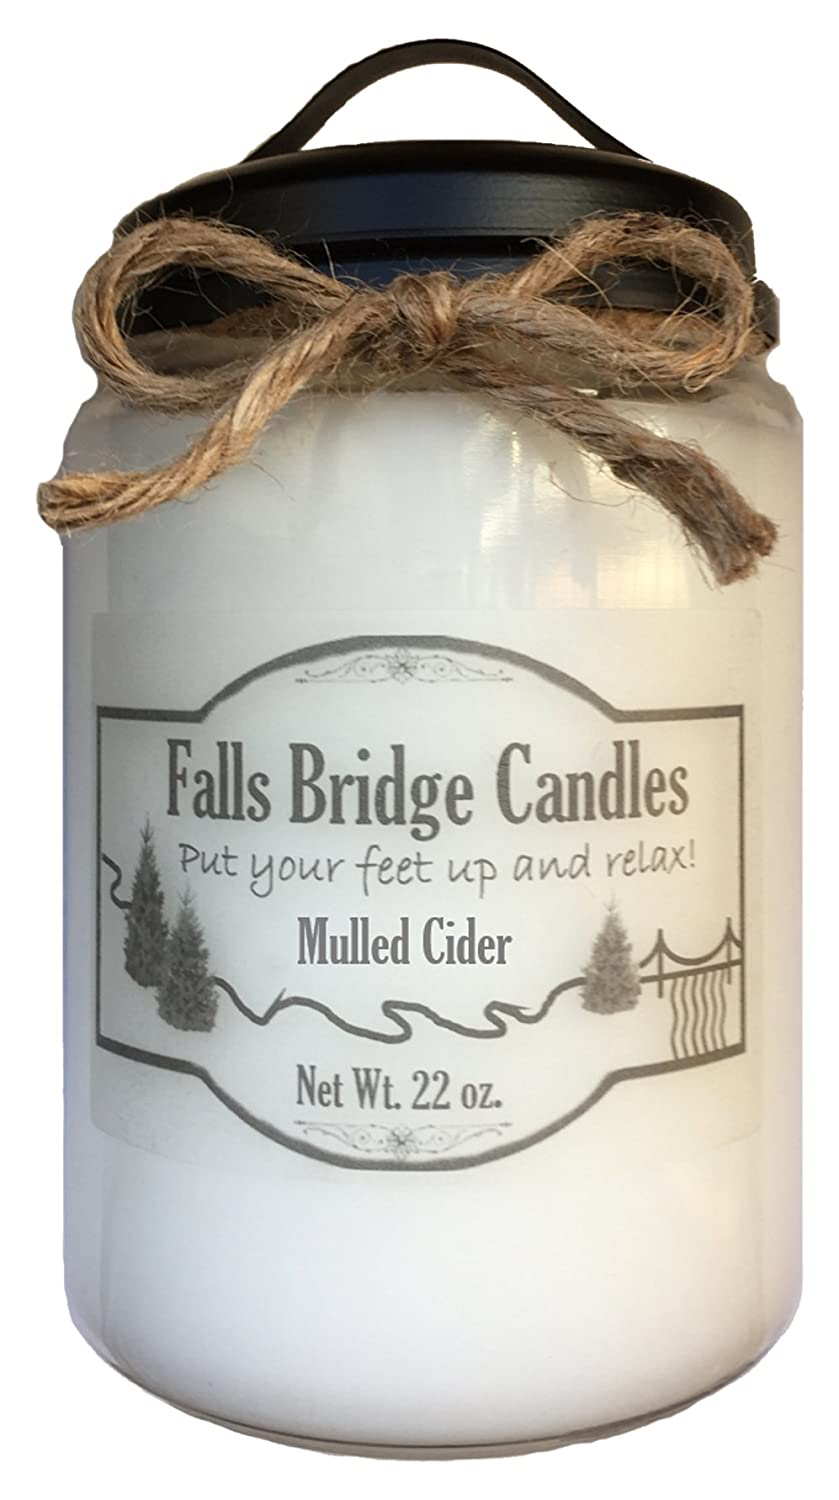 Falls Bridge Candles MLLCDR26 Mulled Cider Paraffin Wax Scented Jar Candle w//Handle Lid 22 oz